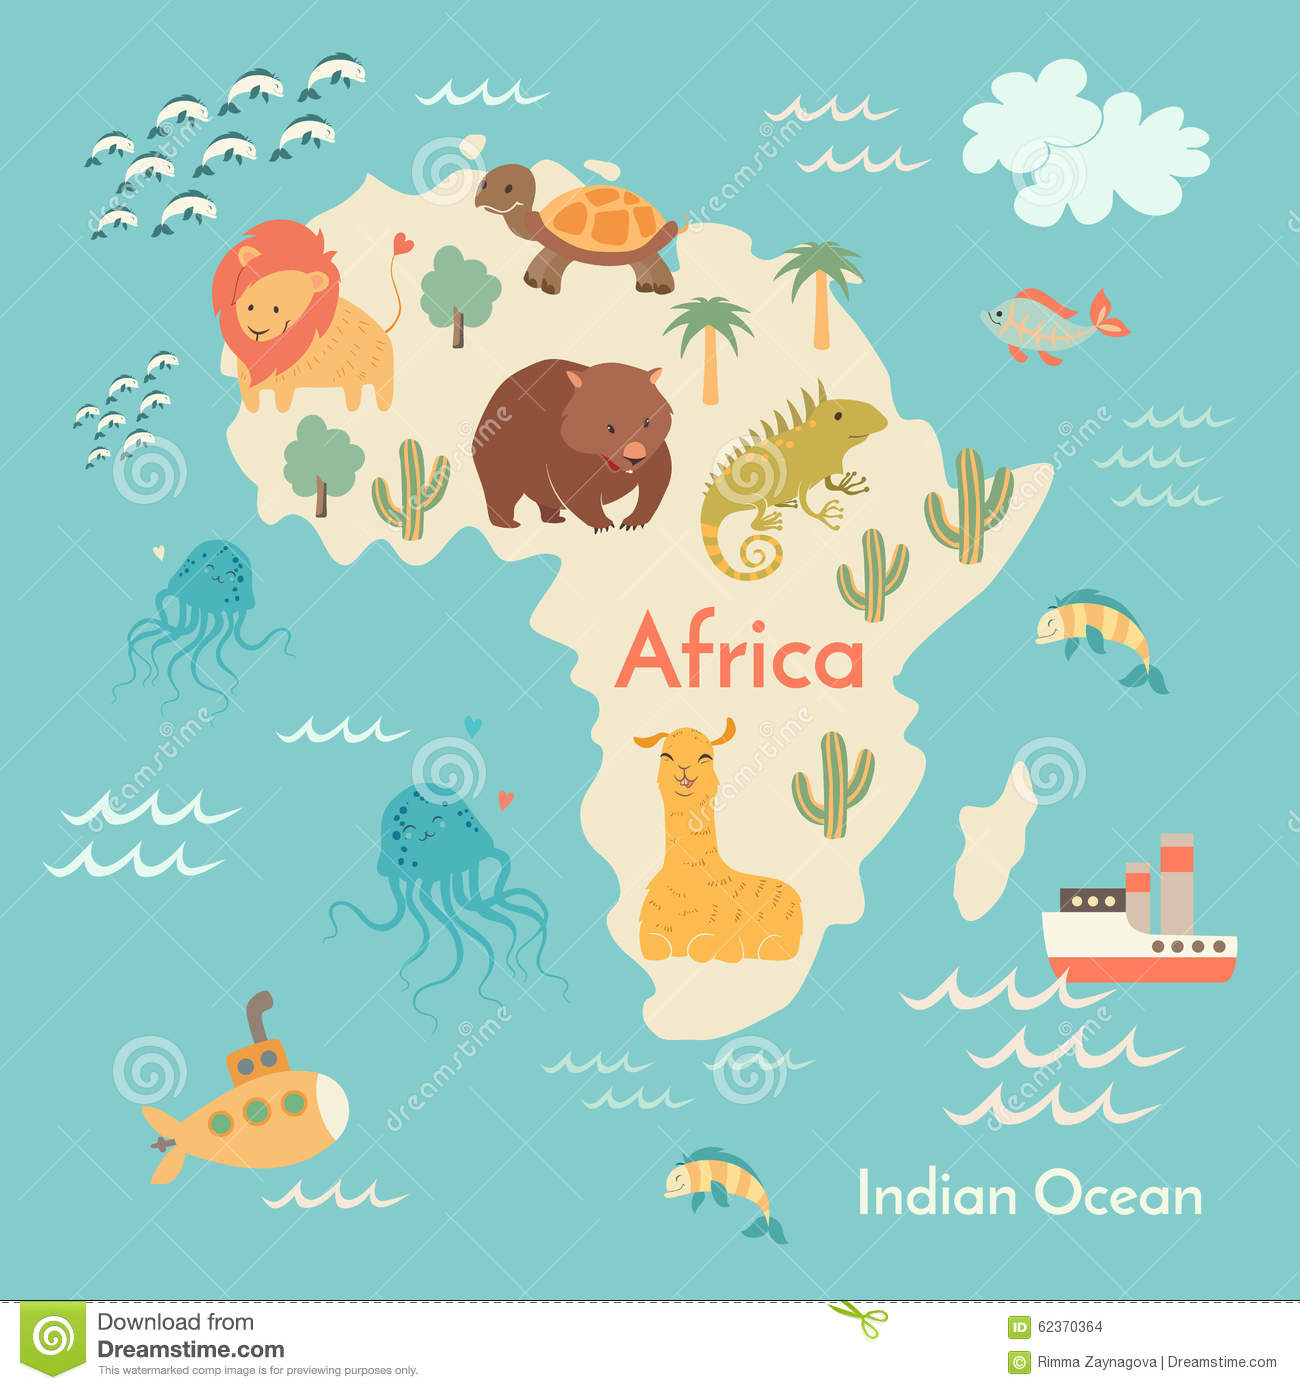 Animals world map africa stock vector illustration of geography animals world map africa royalty free vector gumiabroncs Choice Image